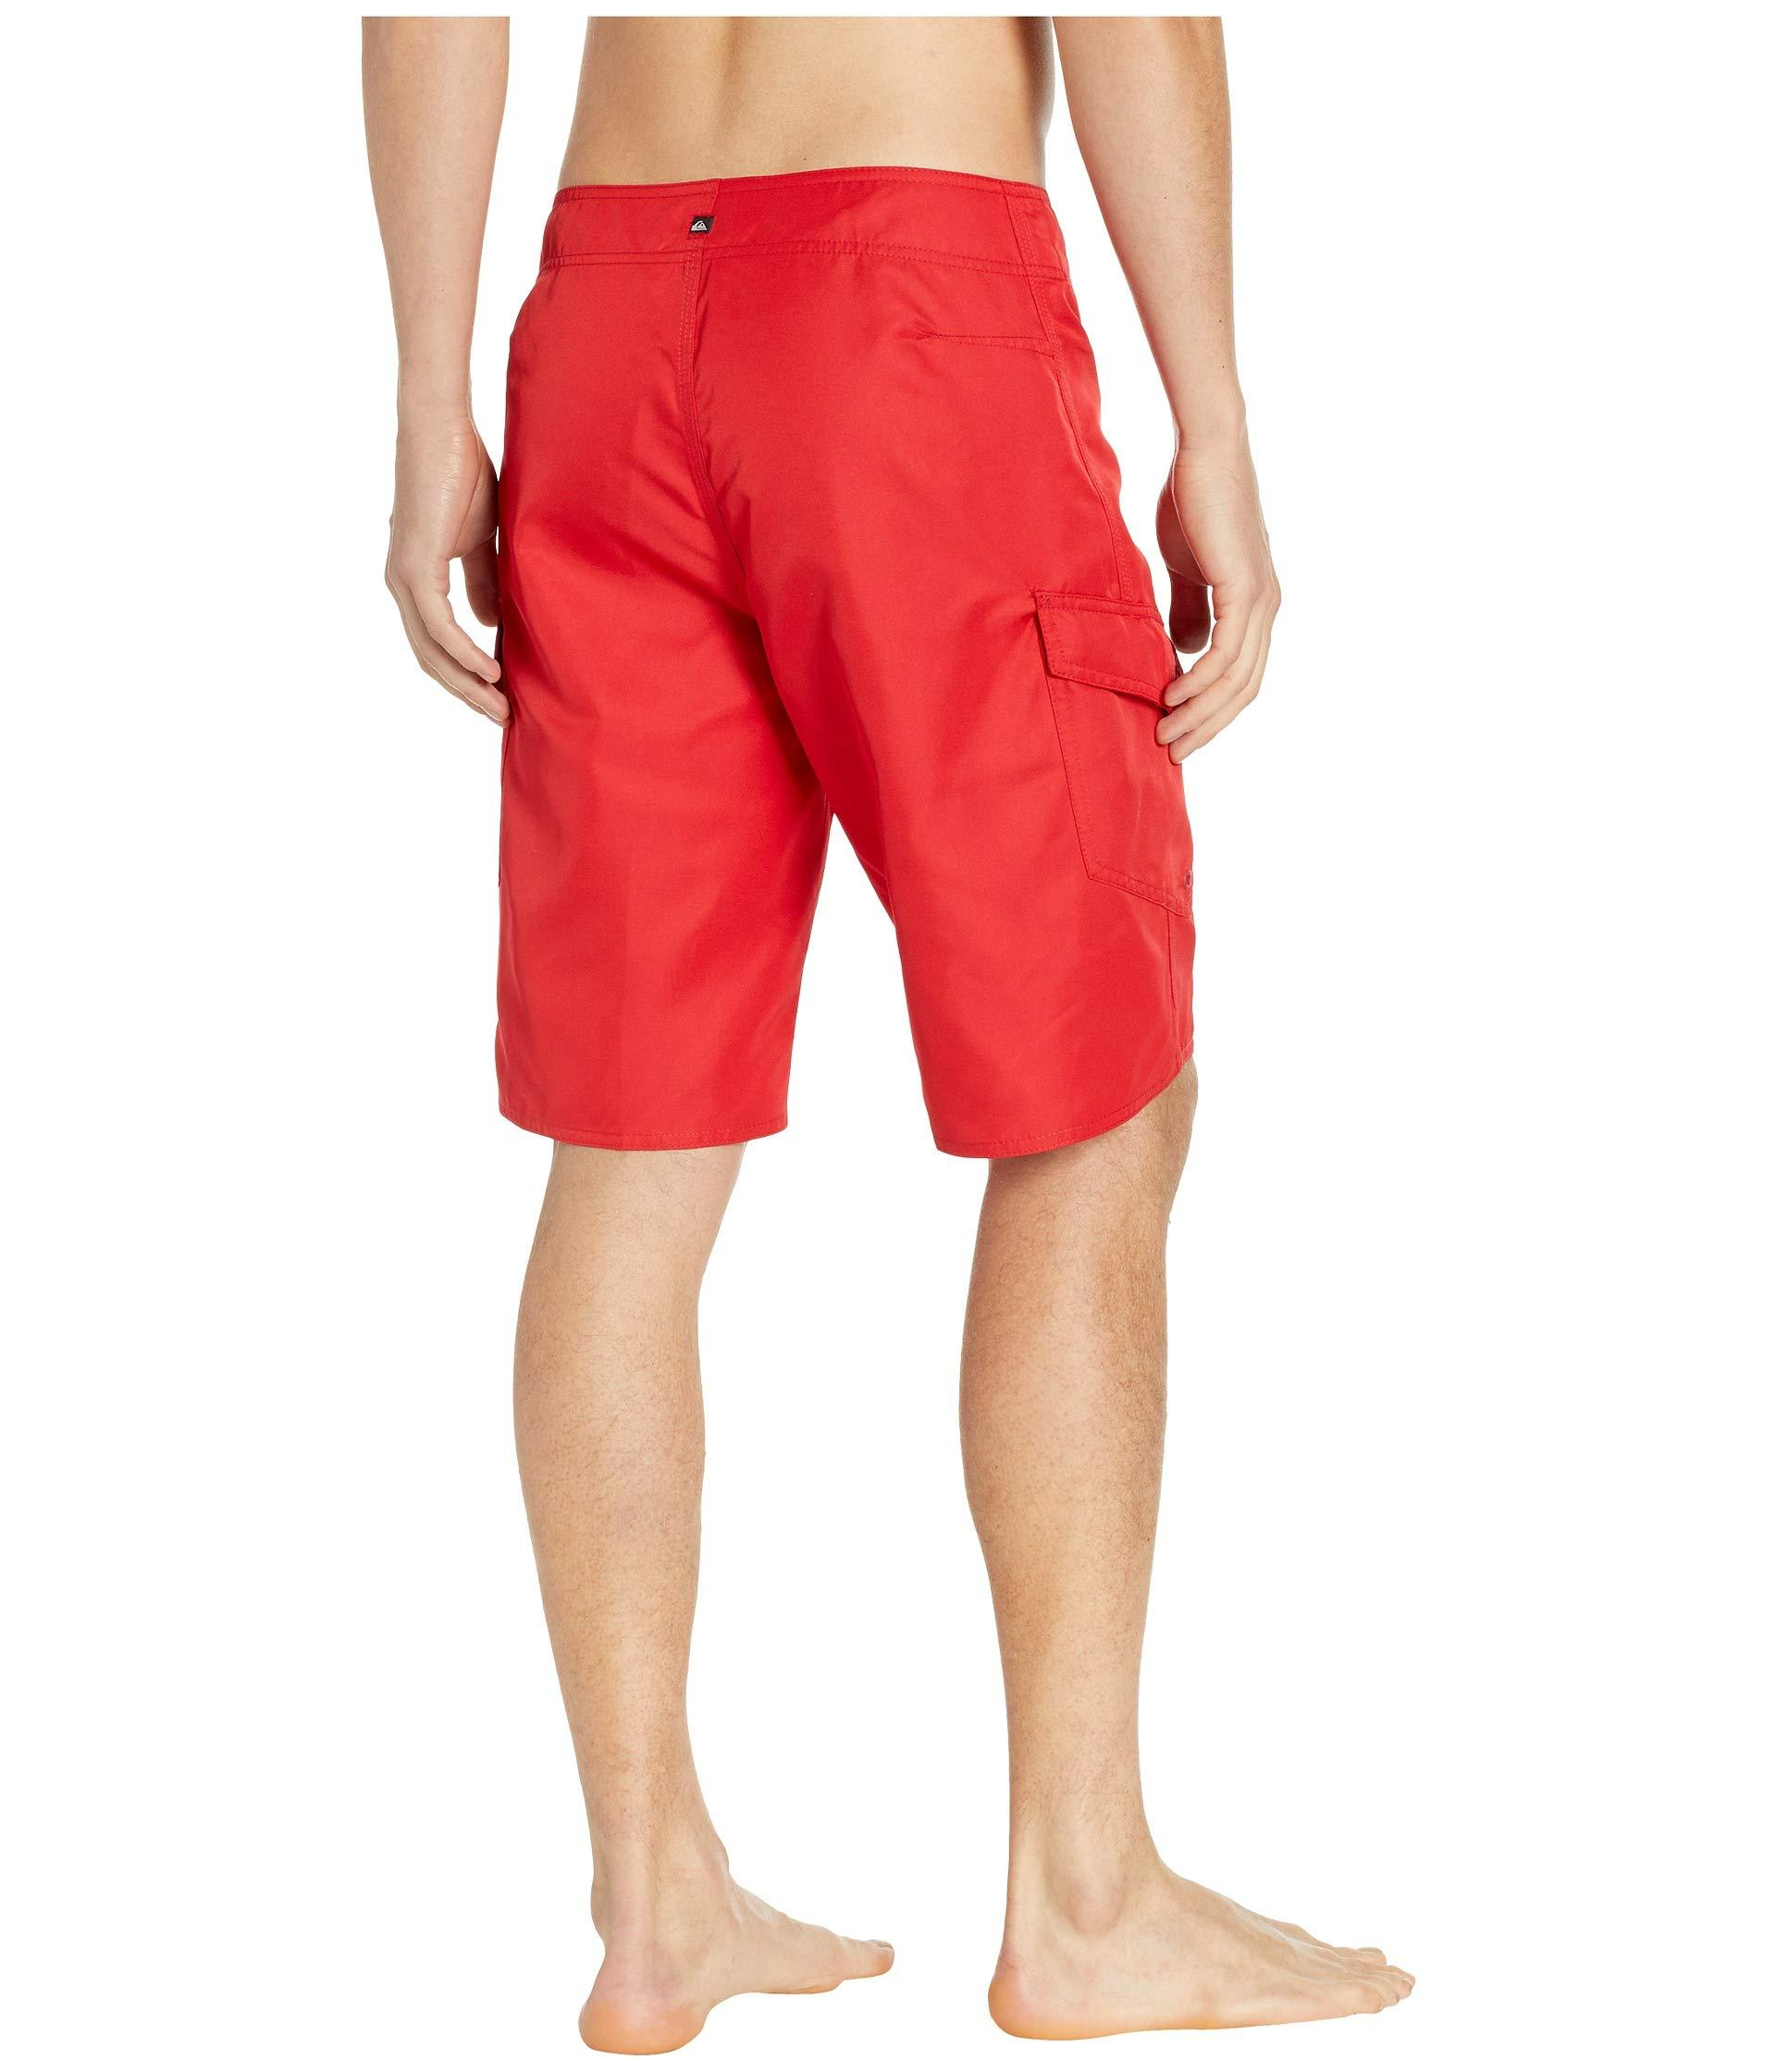 928f203daf6 Quiksilver - Red Manic Solid 21 Boardshorts for Men - Lyst. View fullscreen